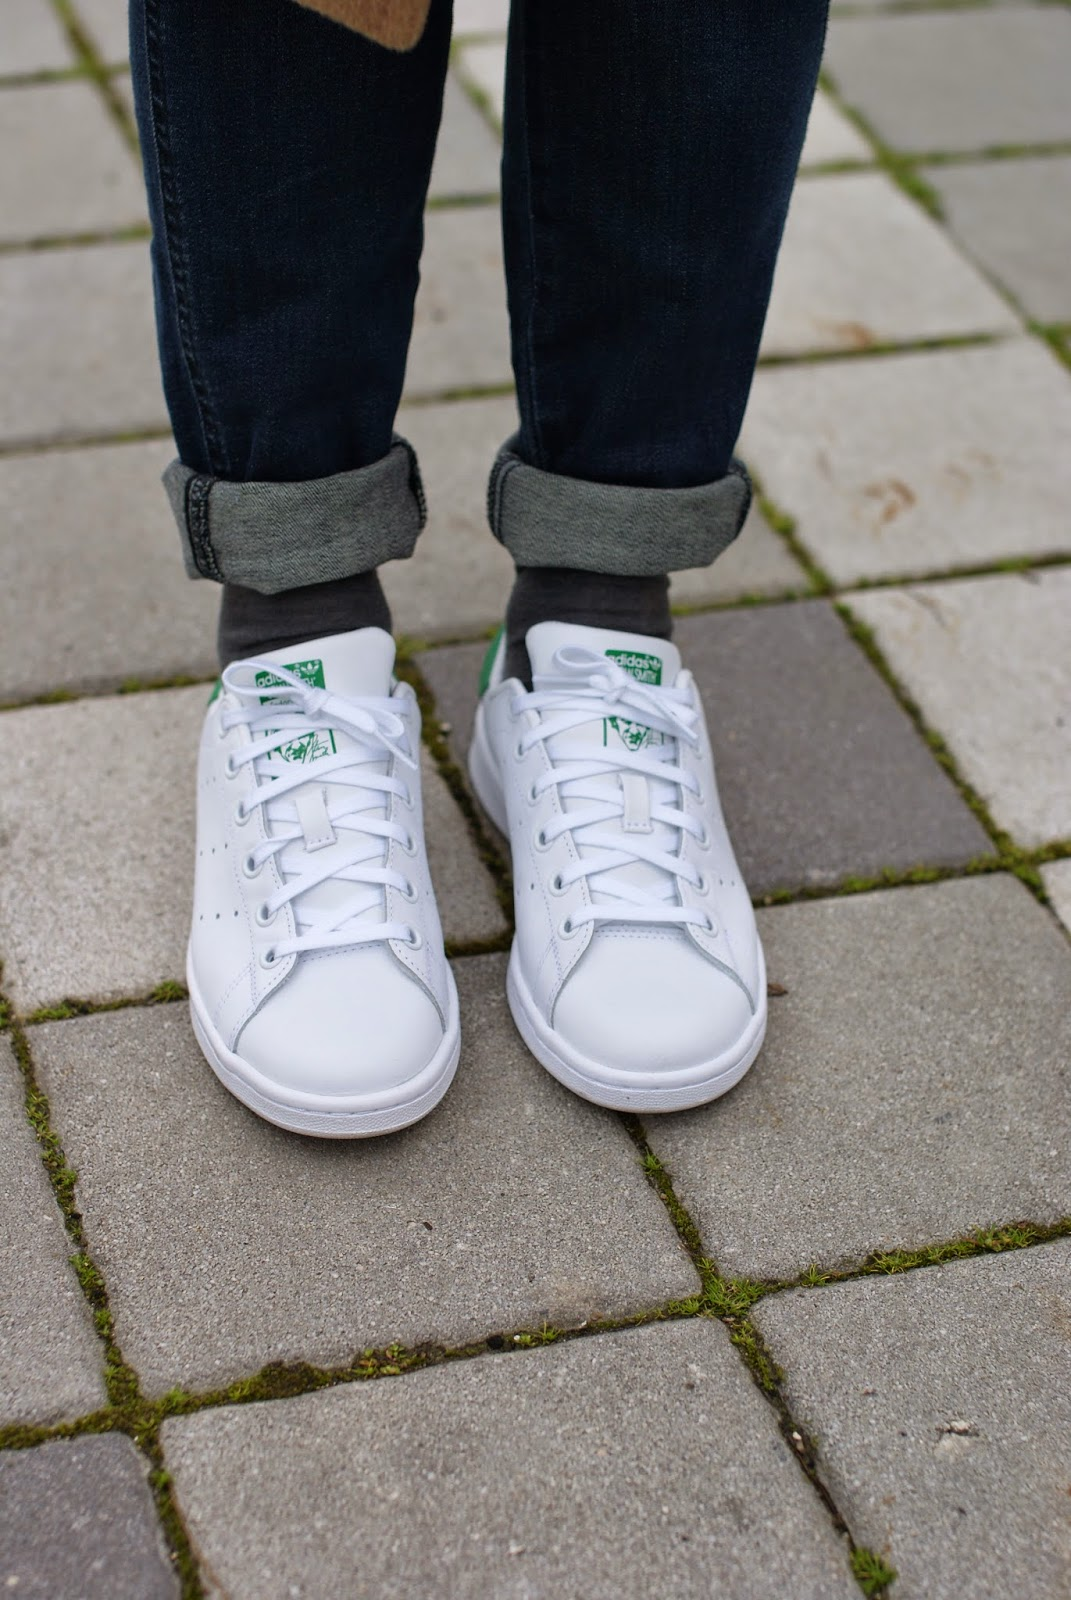 Adidas Stan Smith, Adidas Originals white green sneakers on Fashion and Cookies fashion blog, fashion blogger italiana